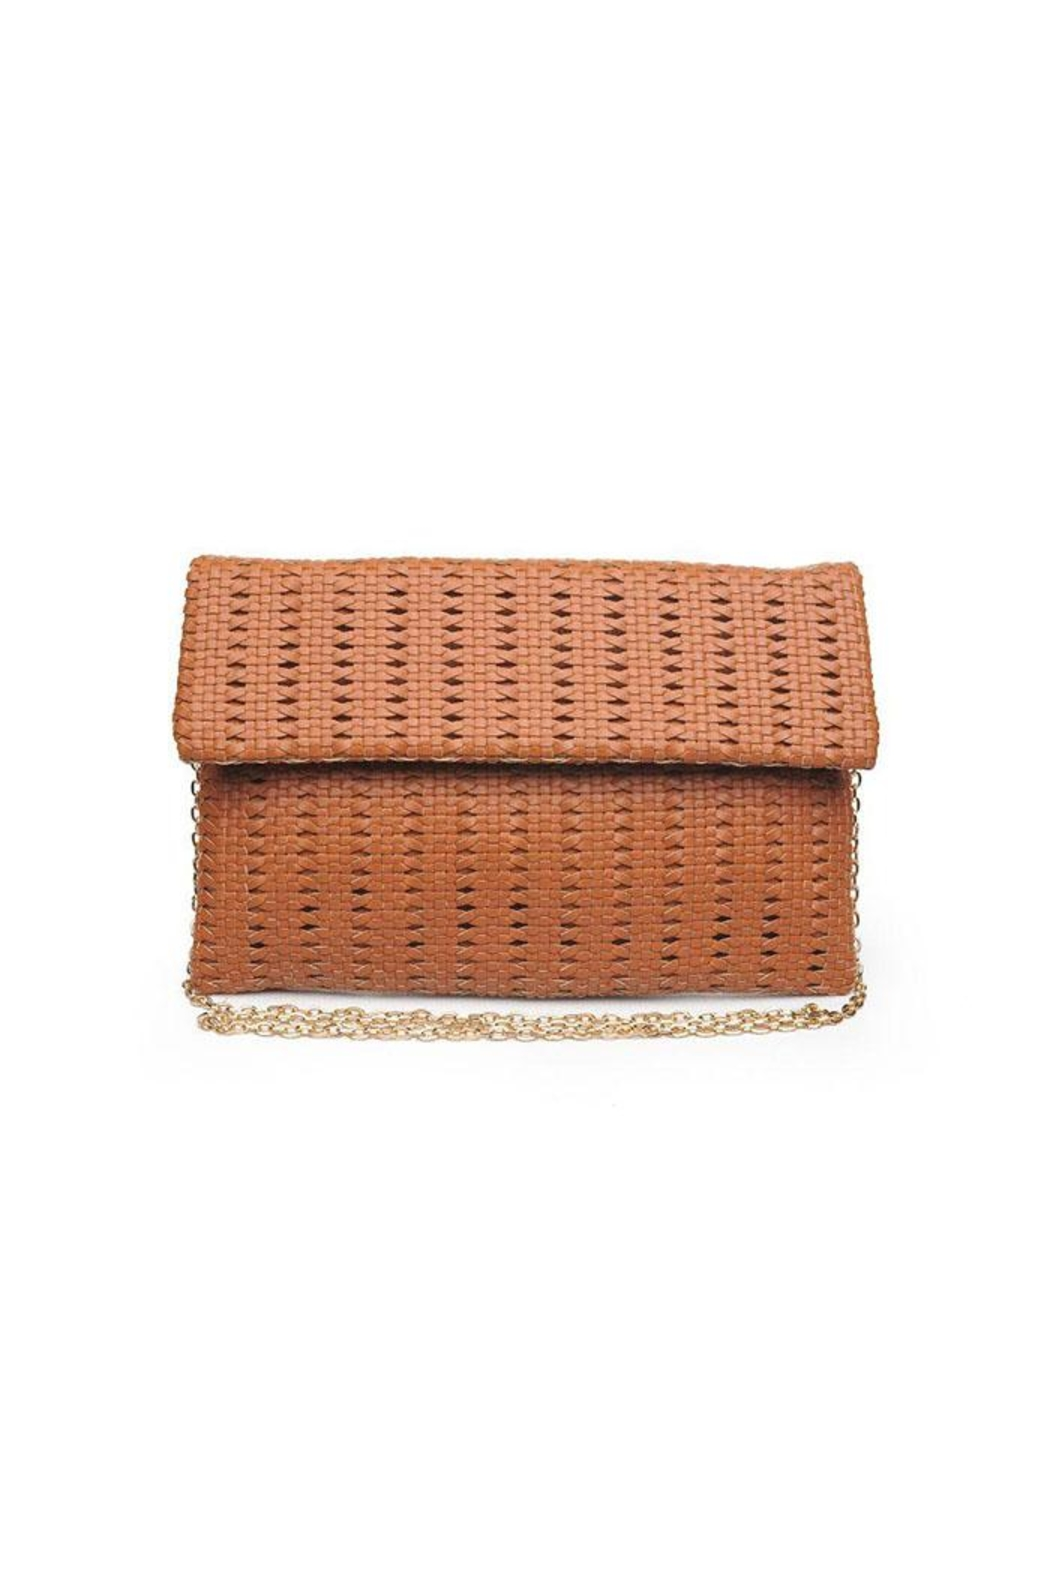 Urban Expressions Addison Woven Clutch - Front Cropped Image